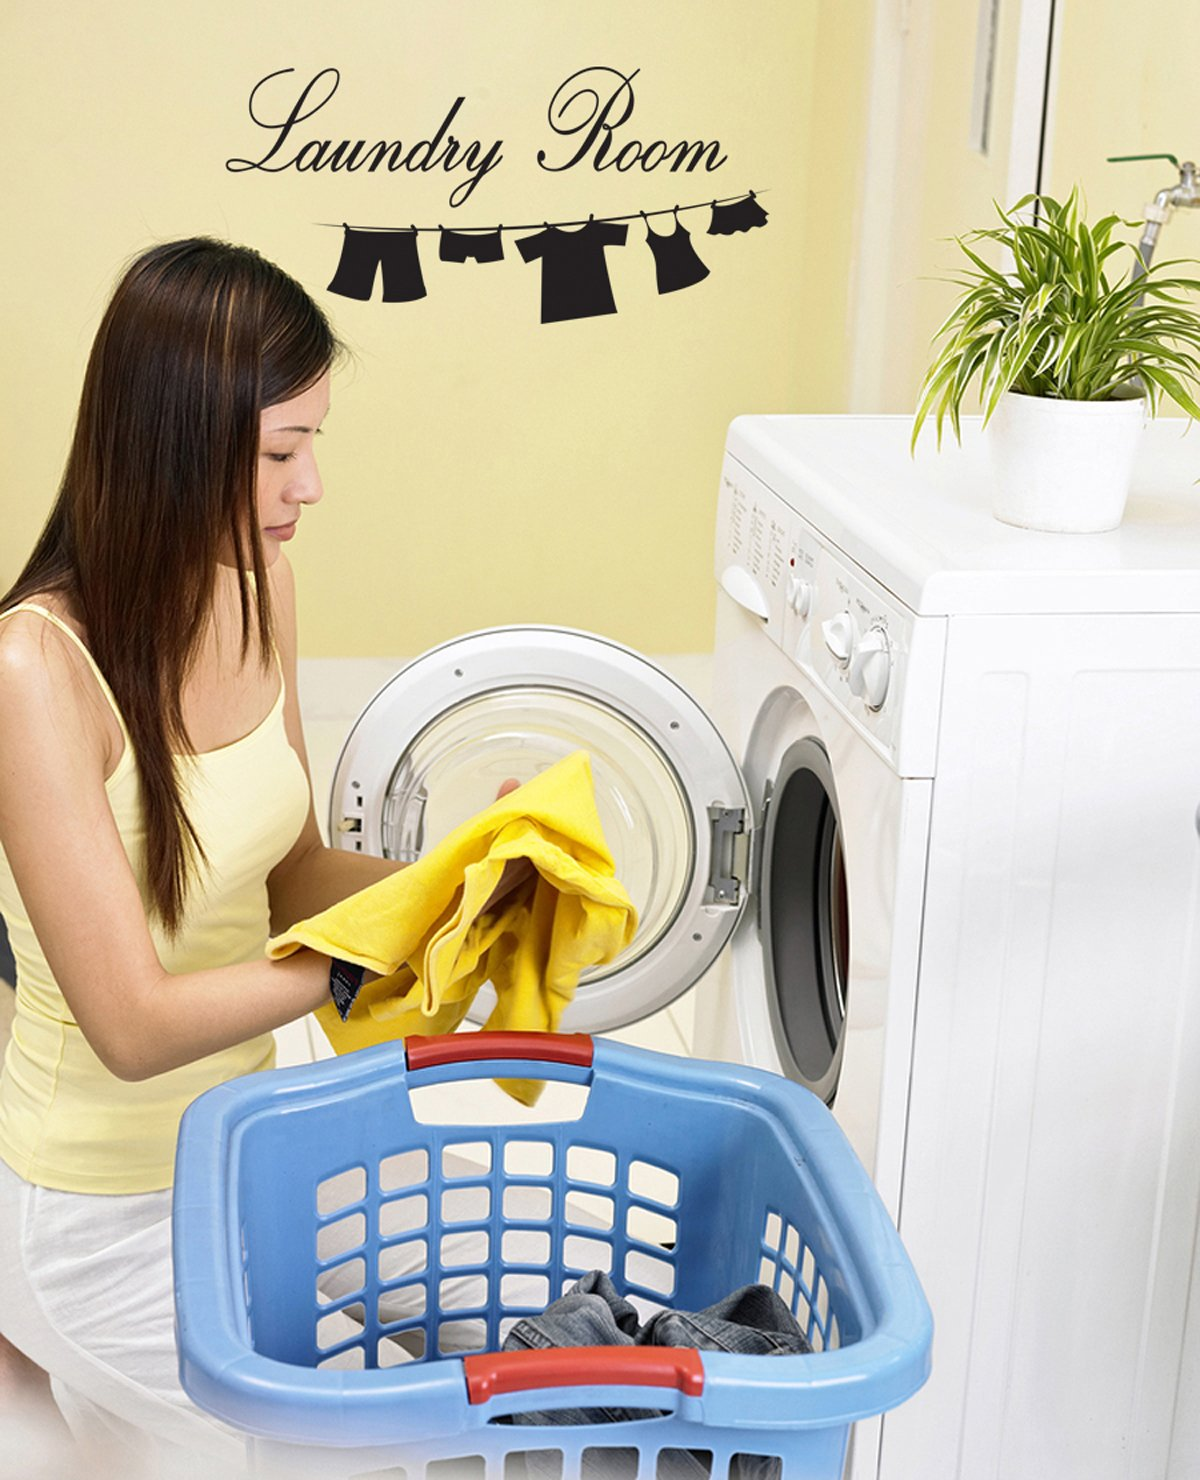 Amazon.com: Wall Decal Sticker Vinyl Art Lettering Laundry Room wall ...